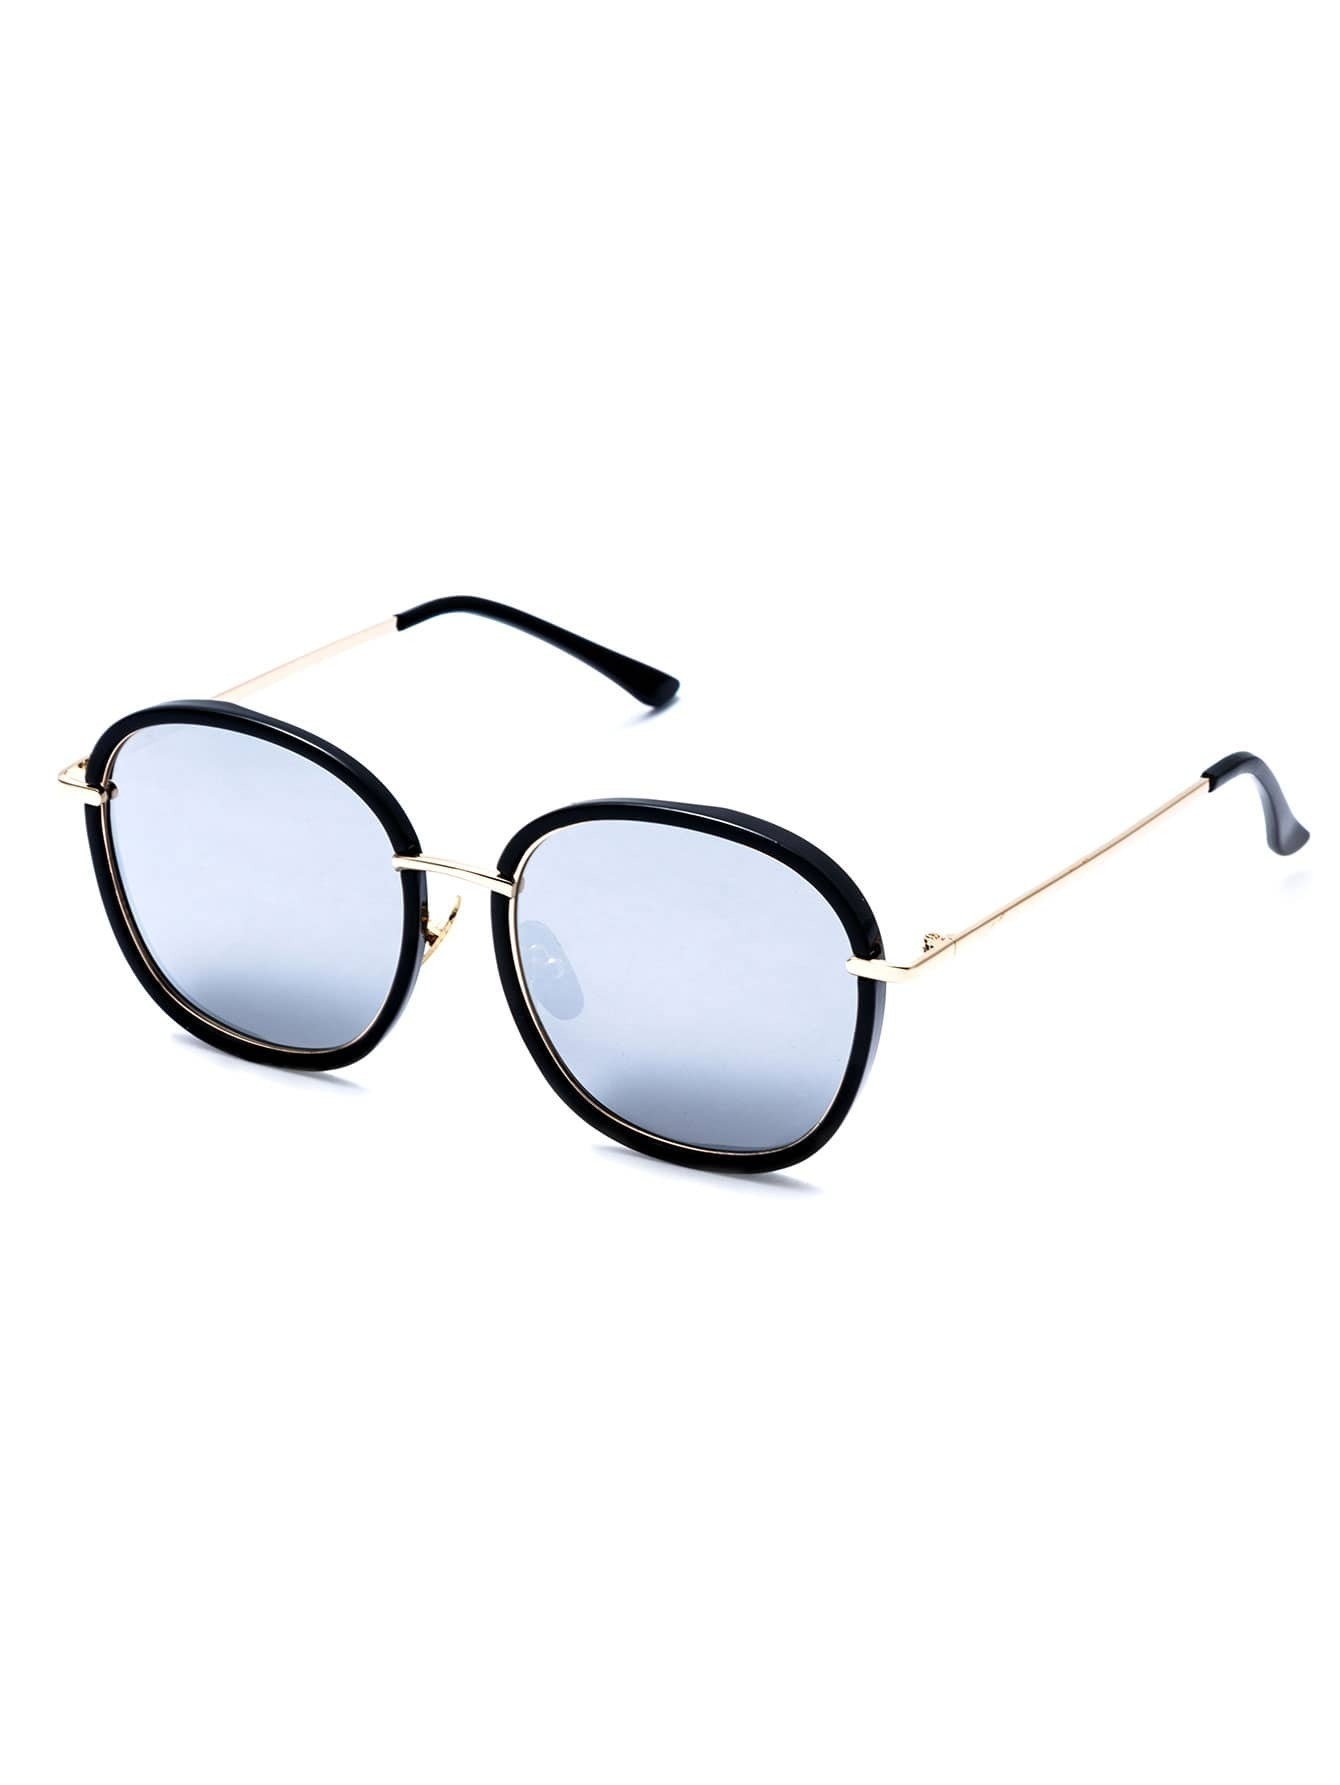 Big Gold Frame Sunglasses : Black Frame Large Lens Gold Arm Sunglasses